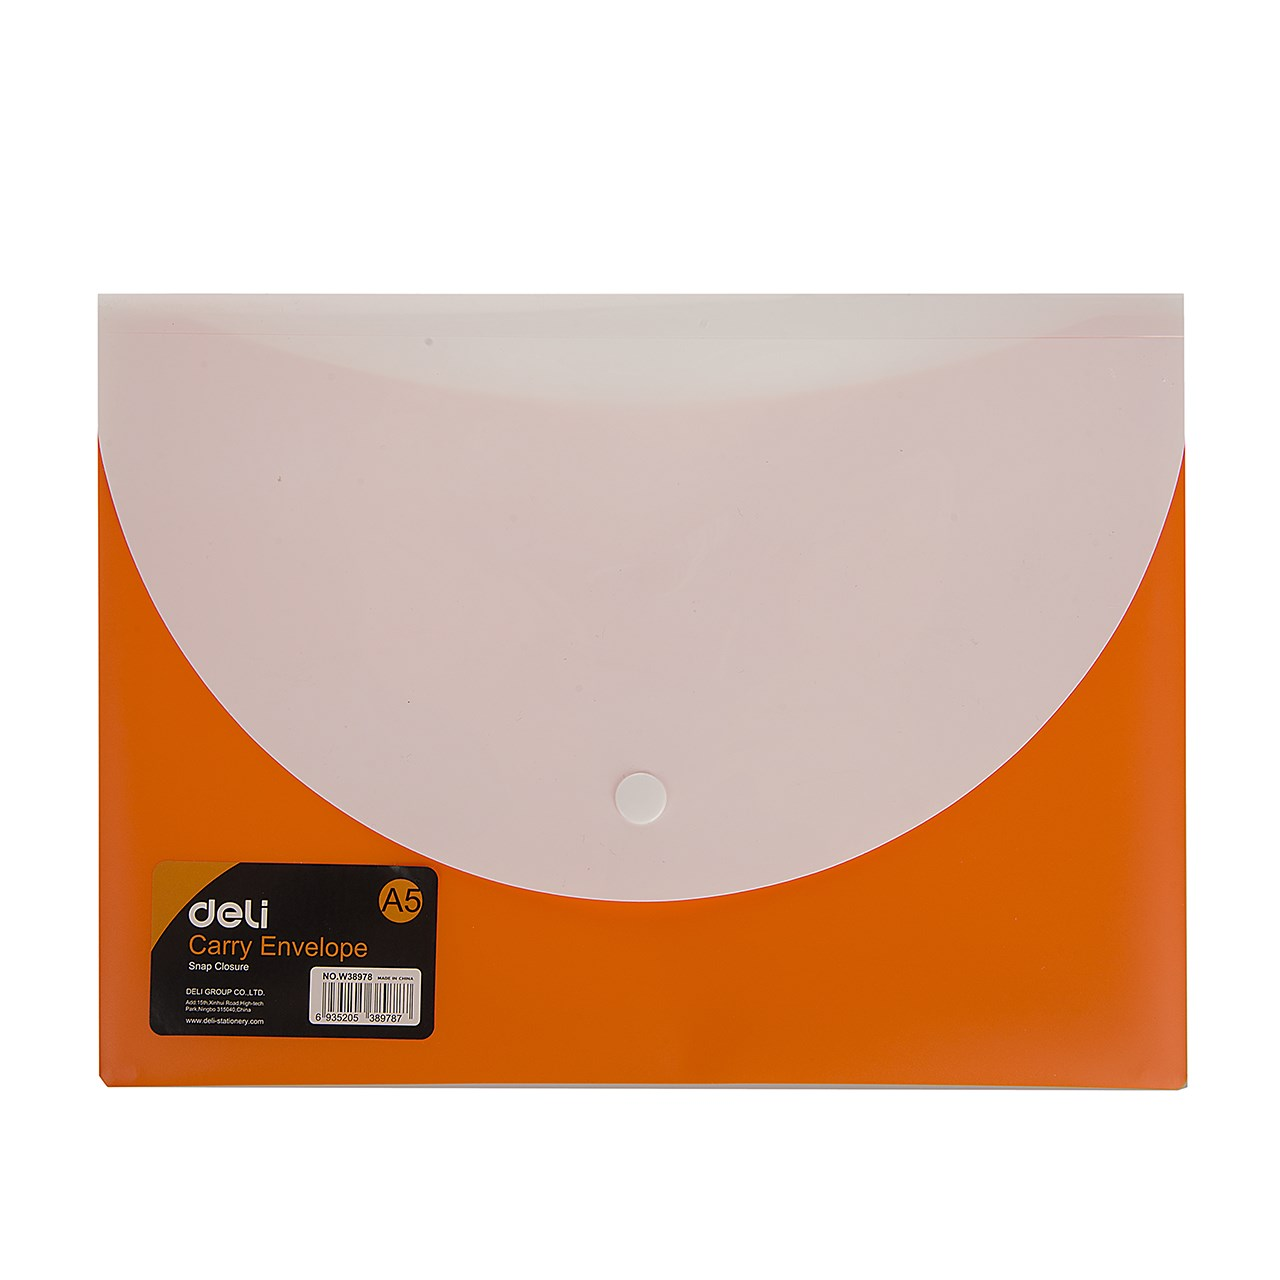 Deli-Button-Folder-Code-W38978---Size-A5